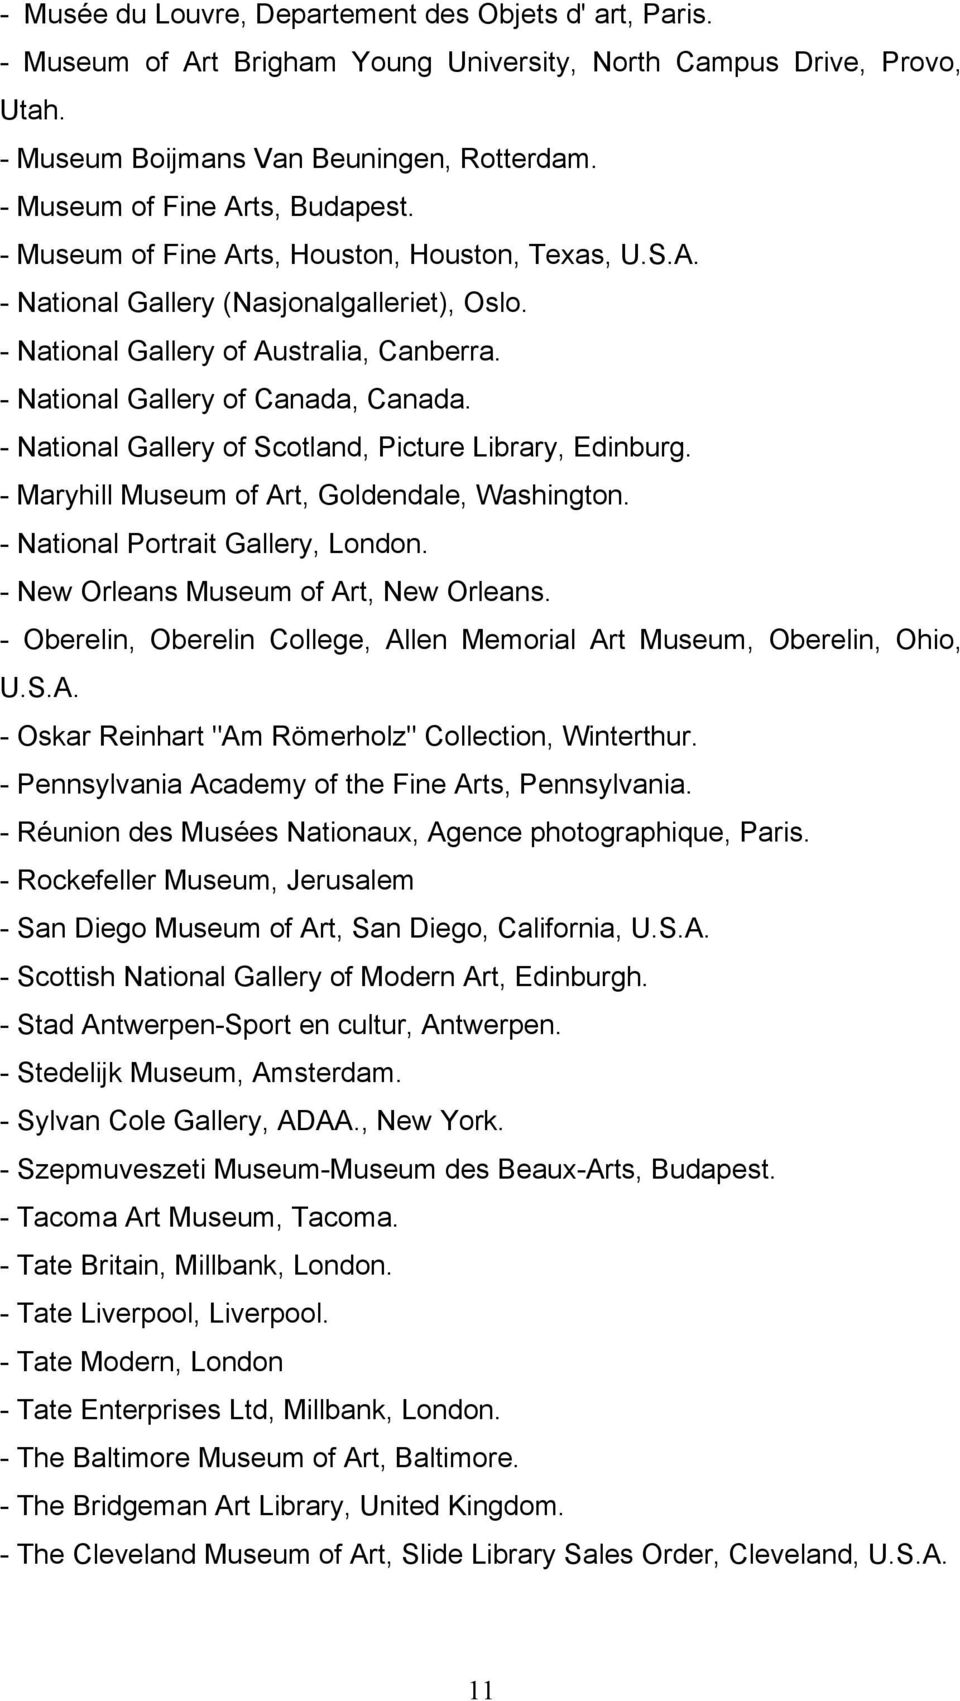 - National Gallery of Canada, Canada. - National Gallery of Scotland, Picture Library, Edinburg. - Maryhill Museum of Art, Goldendale, Washington. - National Portrait Gallery, London.